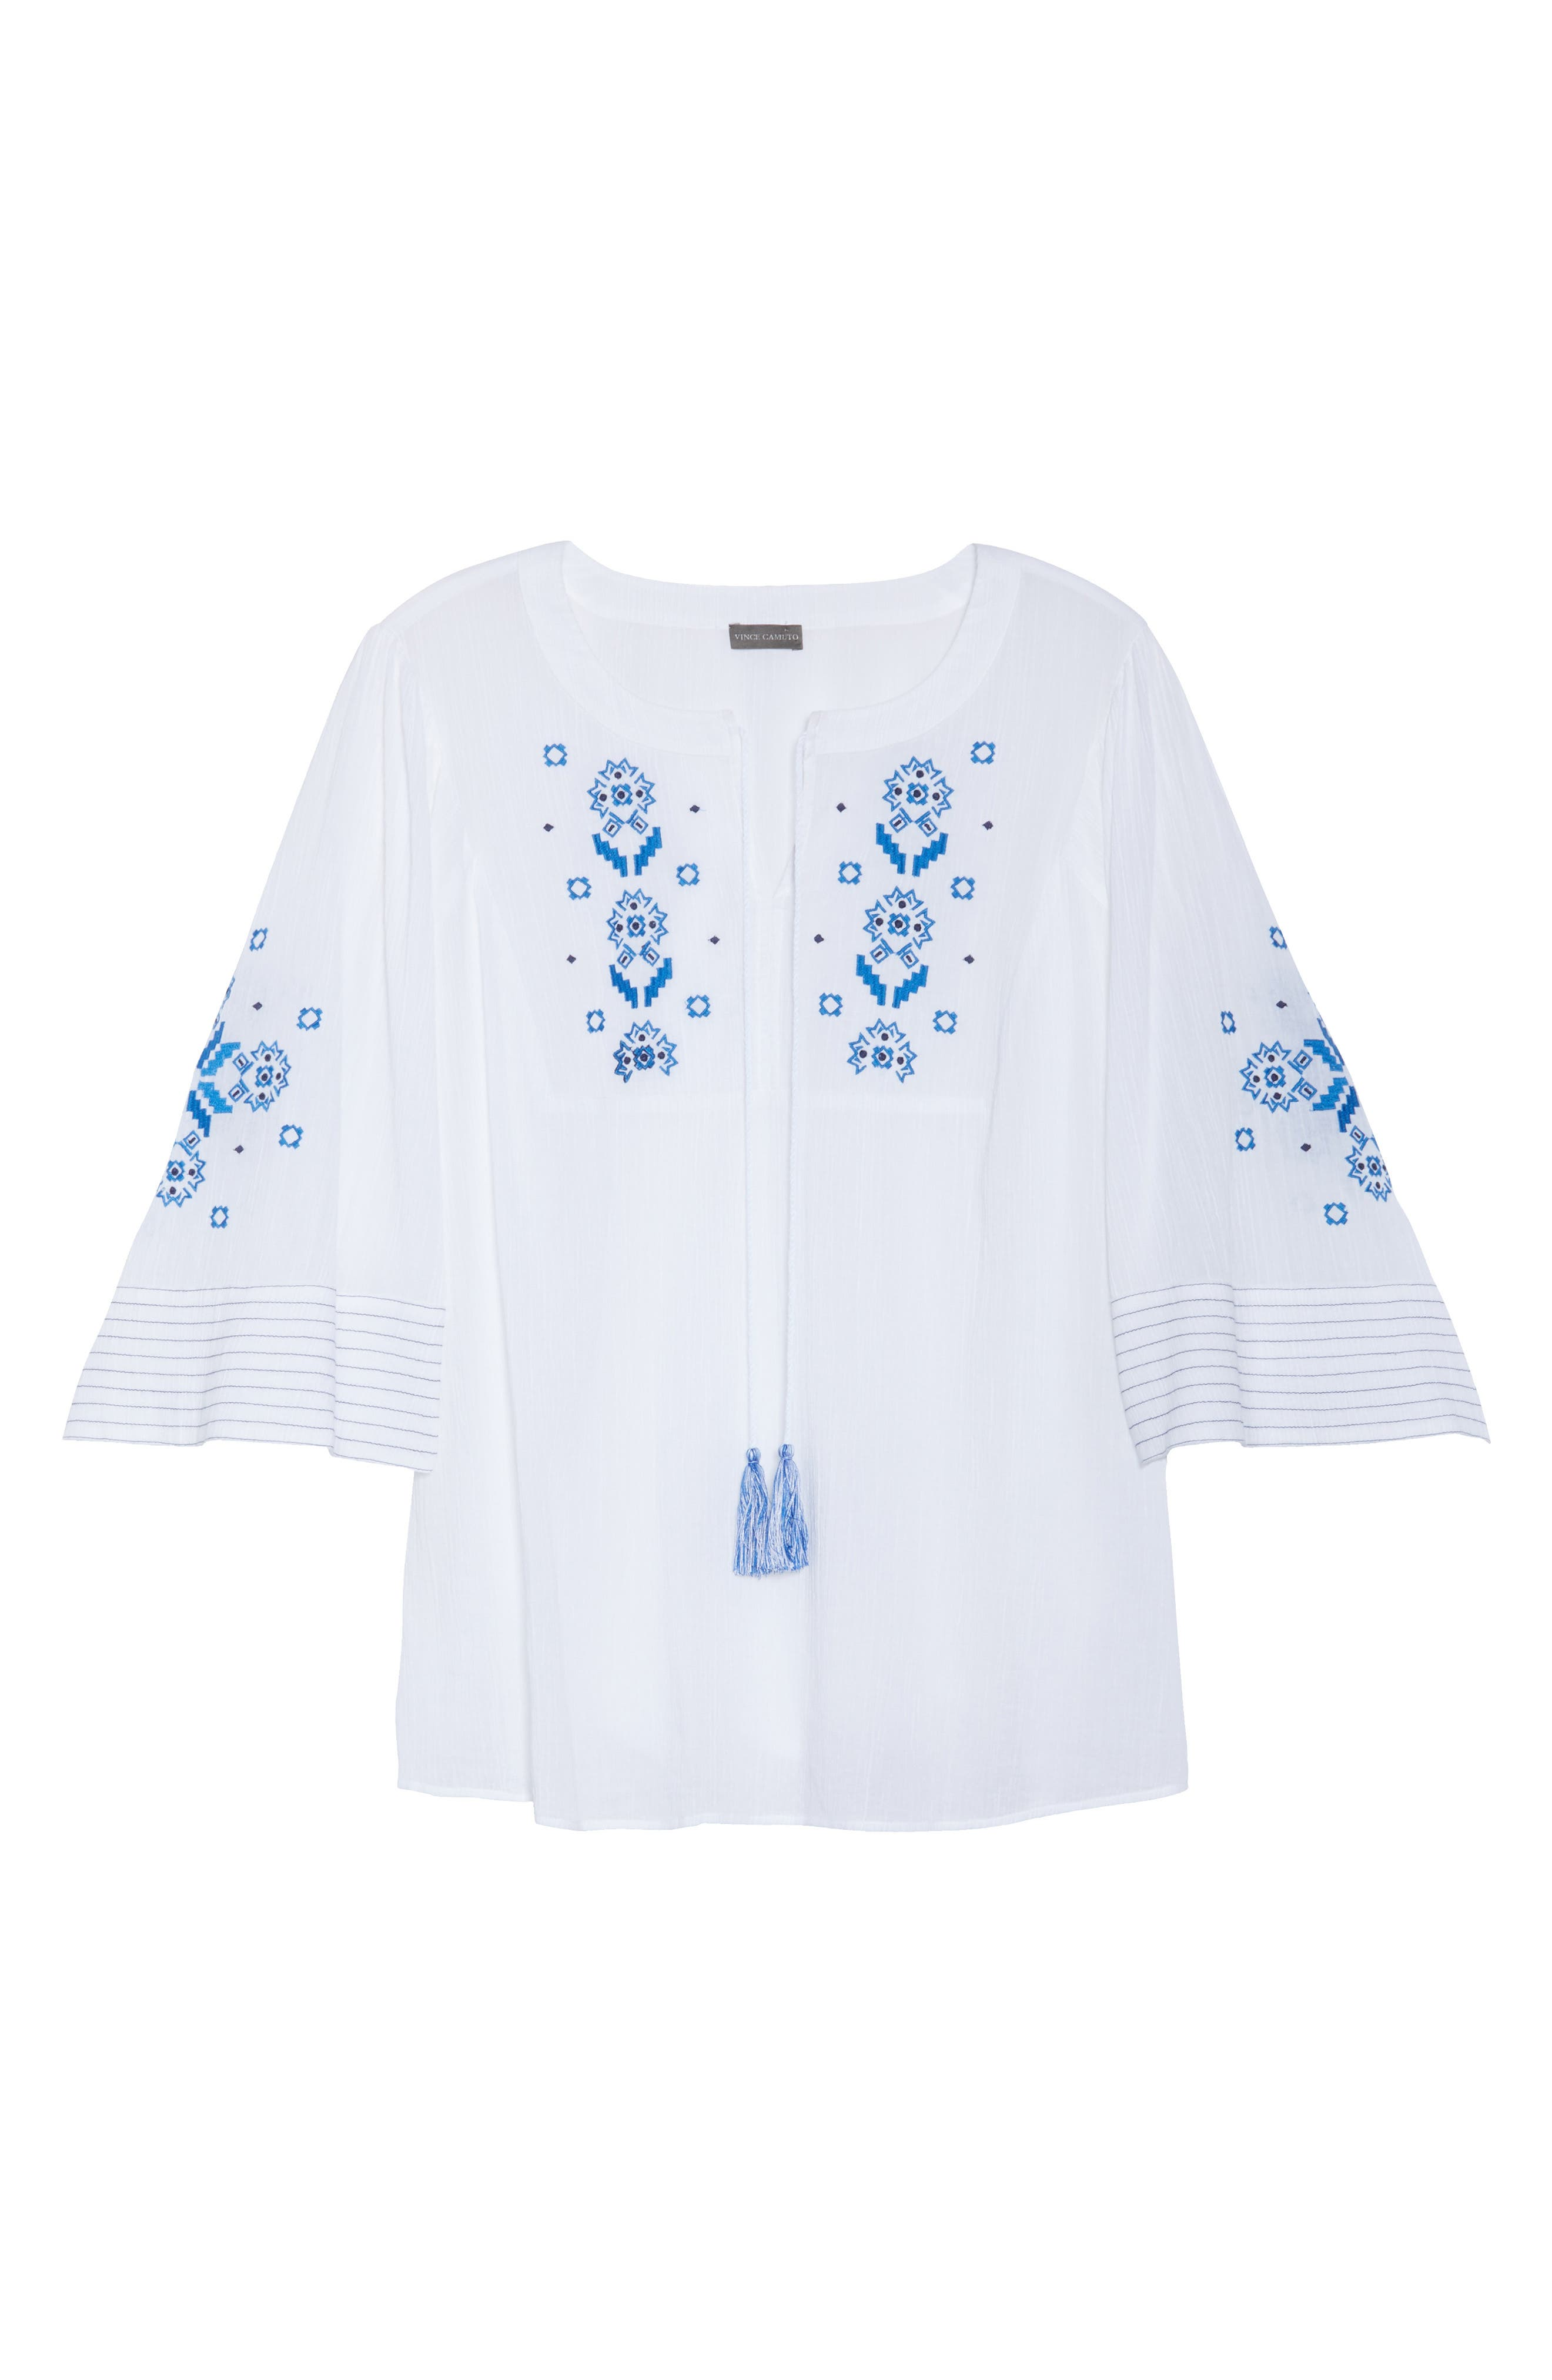 VINCE CAMUTO,                             Bell Sleeve Embroidered Top,                             Alternate thumbnail 7, color,                             145